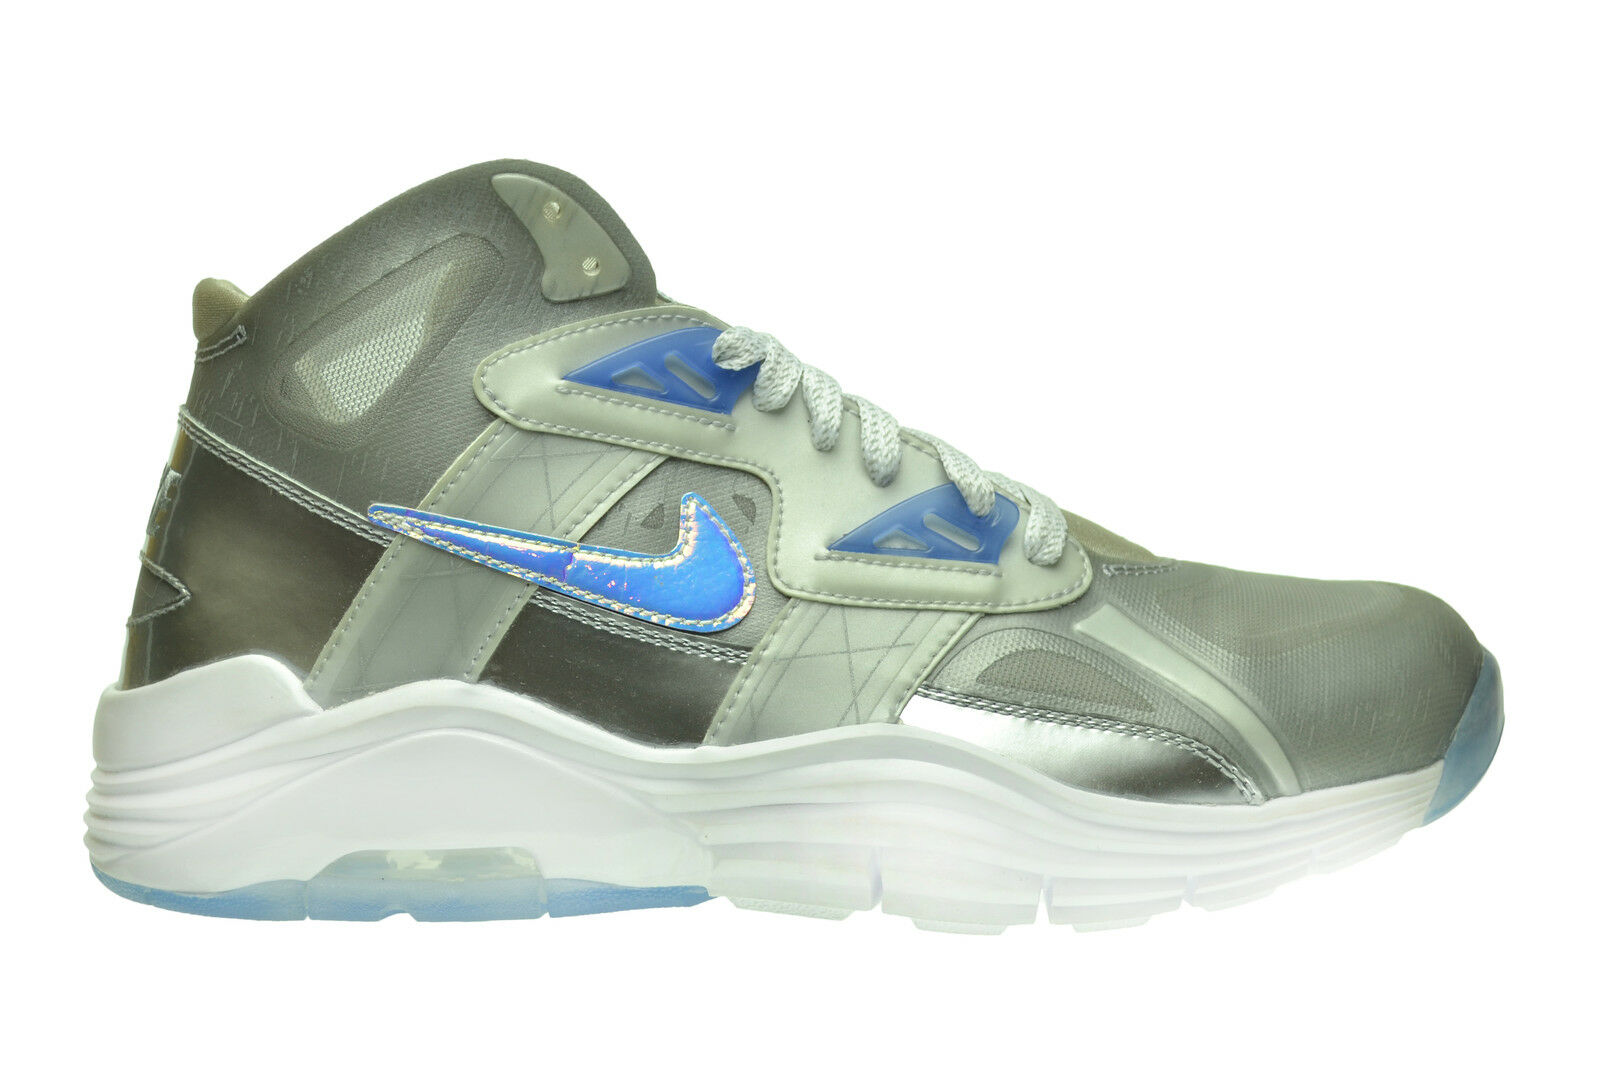 Nike Lunar 180 Trainer SC Premium QS Men's Shoes Silver/Ice Blue 646797-001